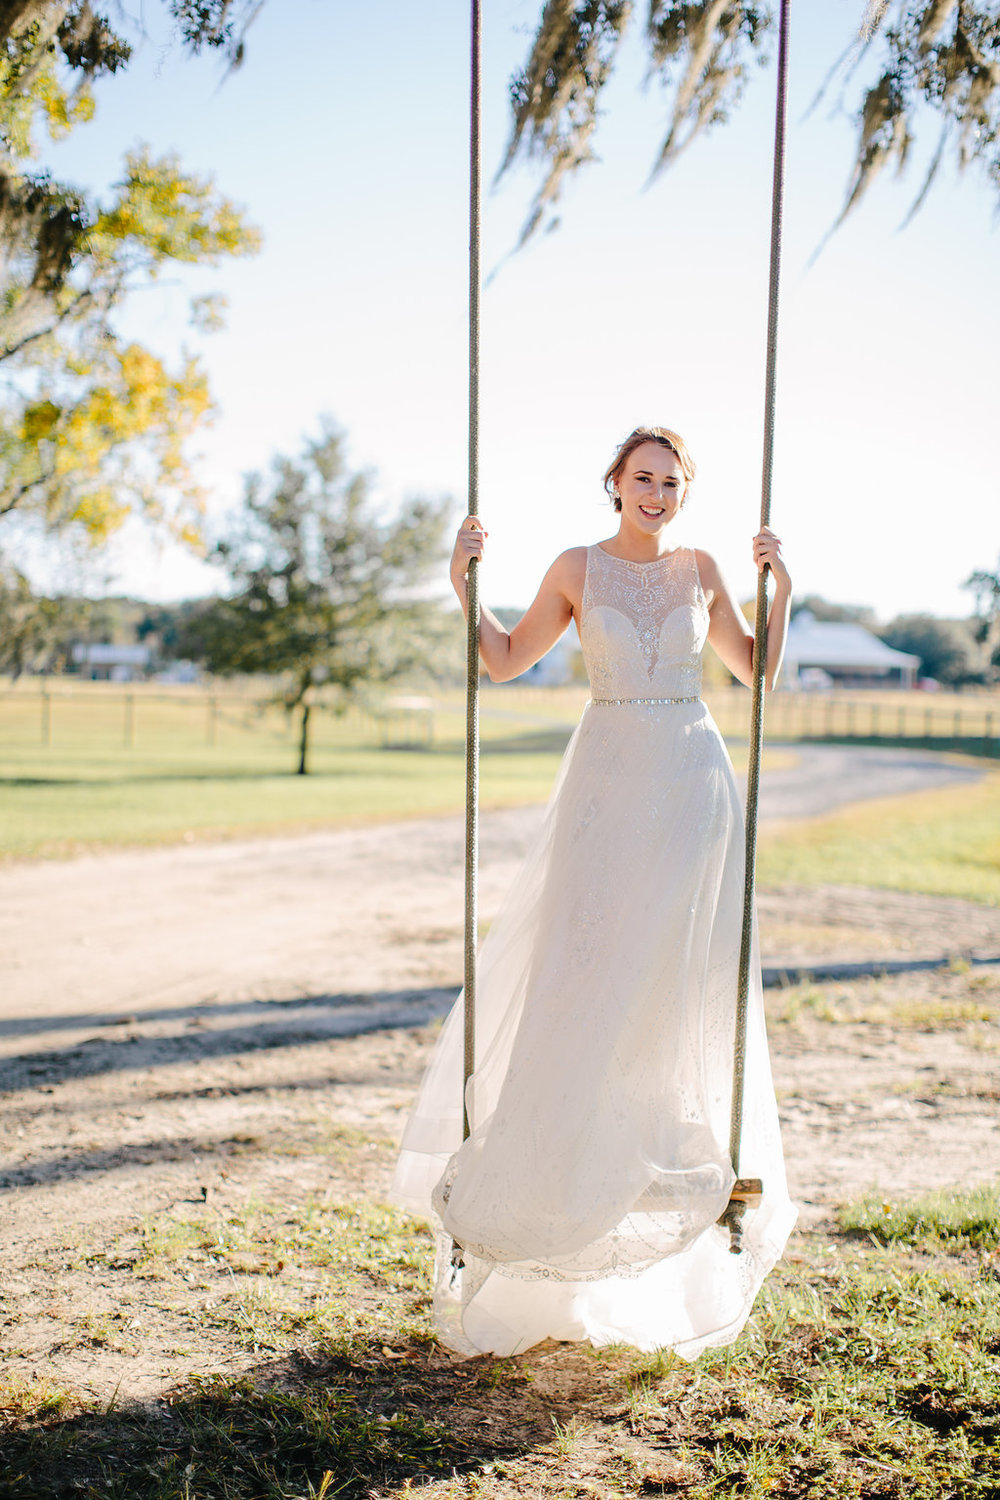 Bride on a swing at Sugah Cain Plantation  //  Charleston wedding photography by Carolina Photosmith  //  on A Lowocountry Wedding Magazine & Blog